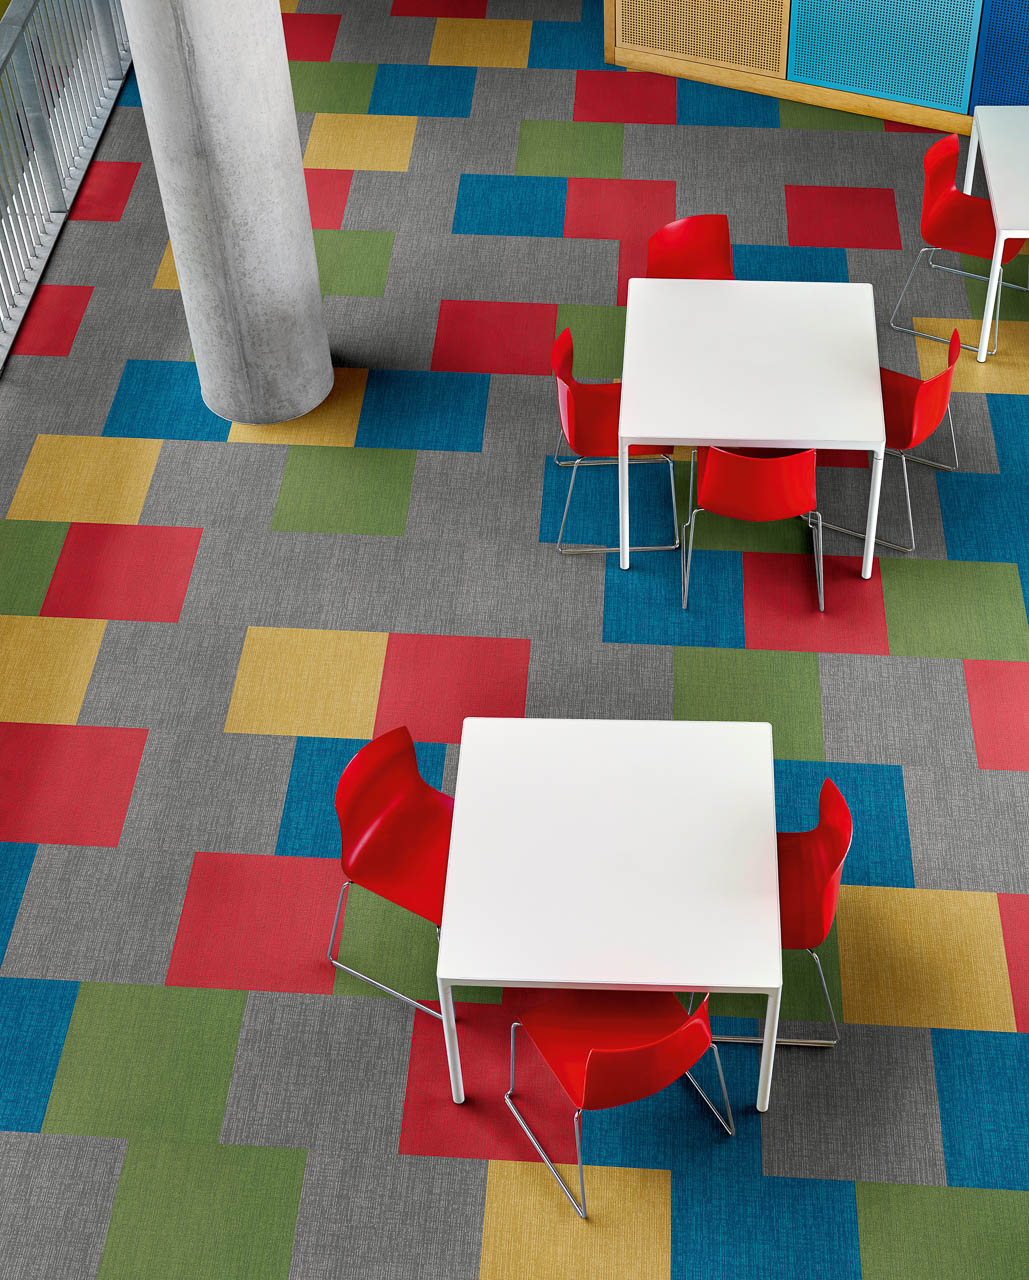 Amtico Colour Anchor Ditto, Poppy, Abuzz, Meadow and Squawk Teppichfliesen gemischt in einer Brick Verlegemethode.